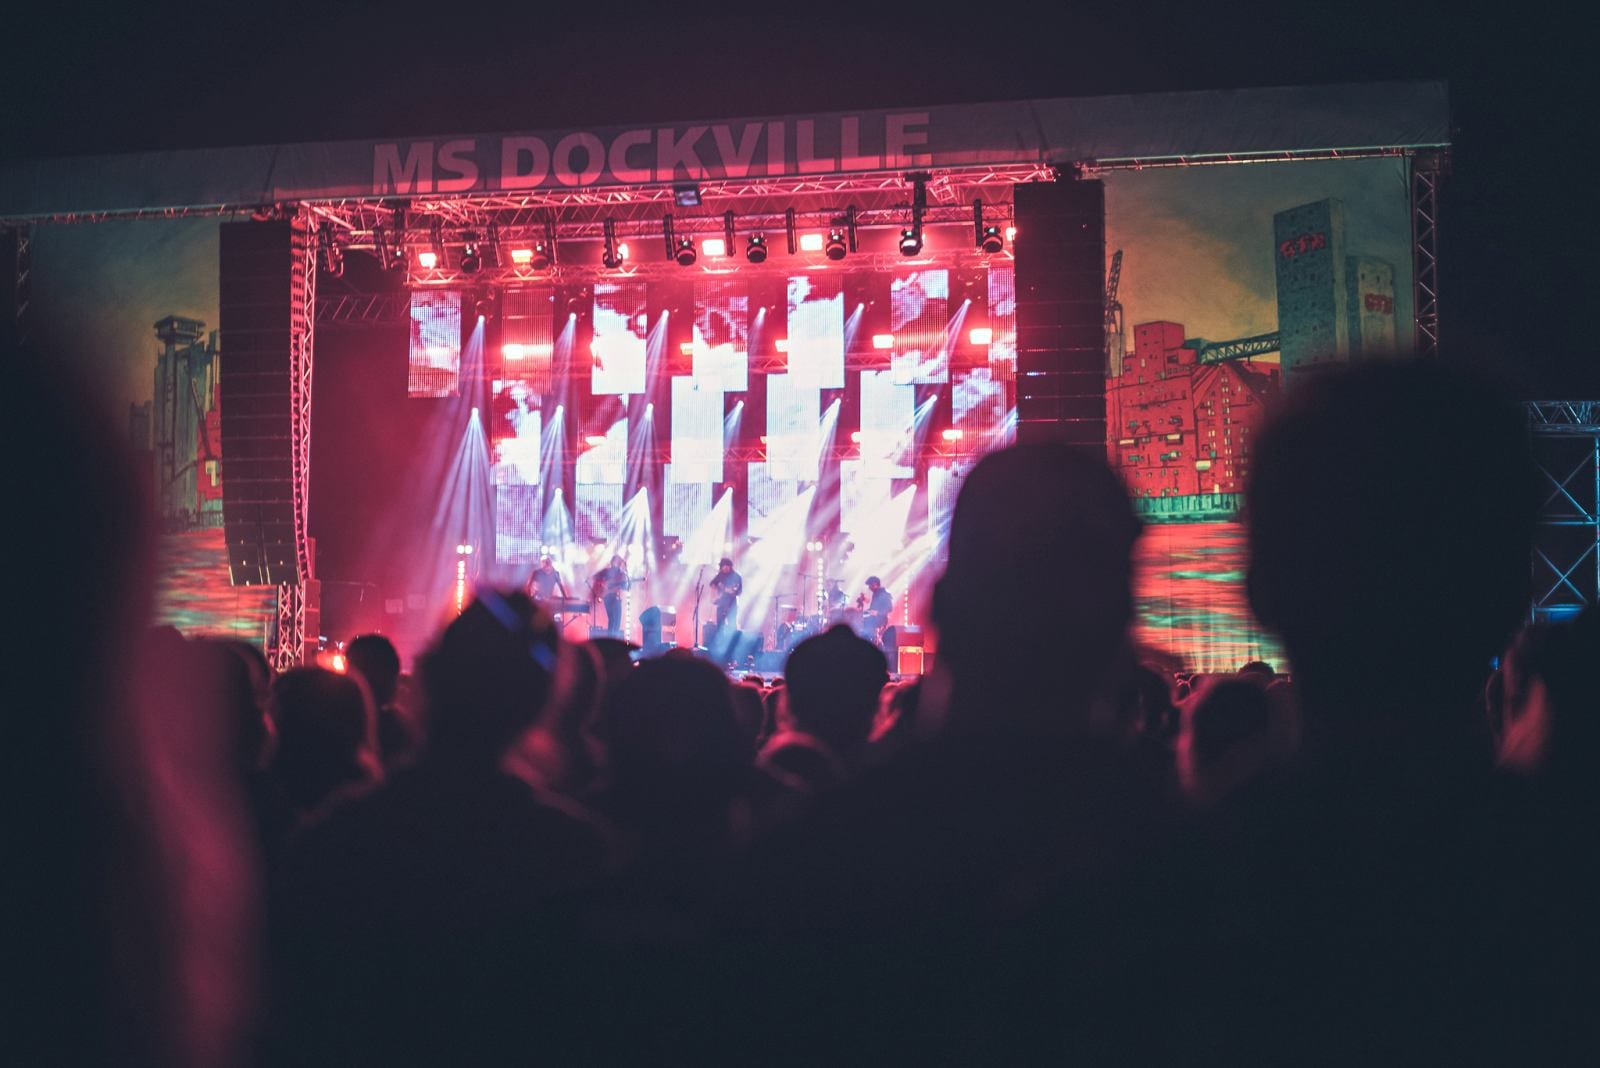 051 ms dockville 2015 jose gonzalez - MS Dockville 2015